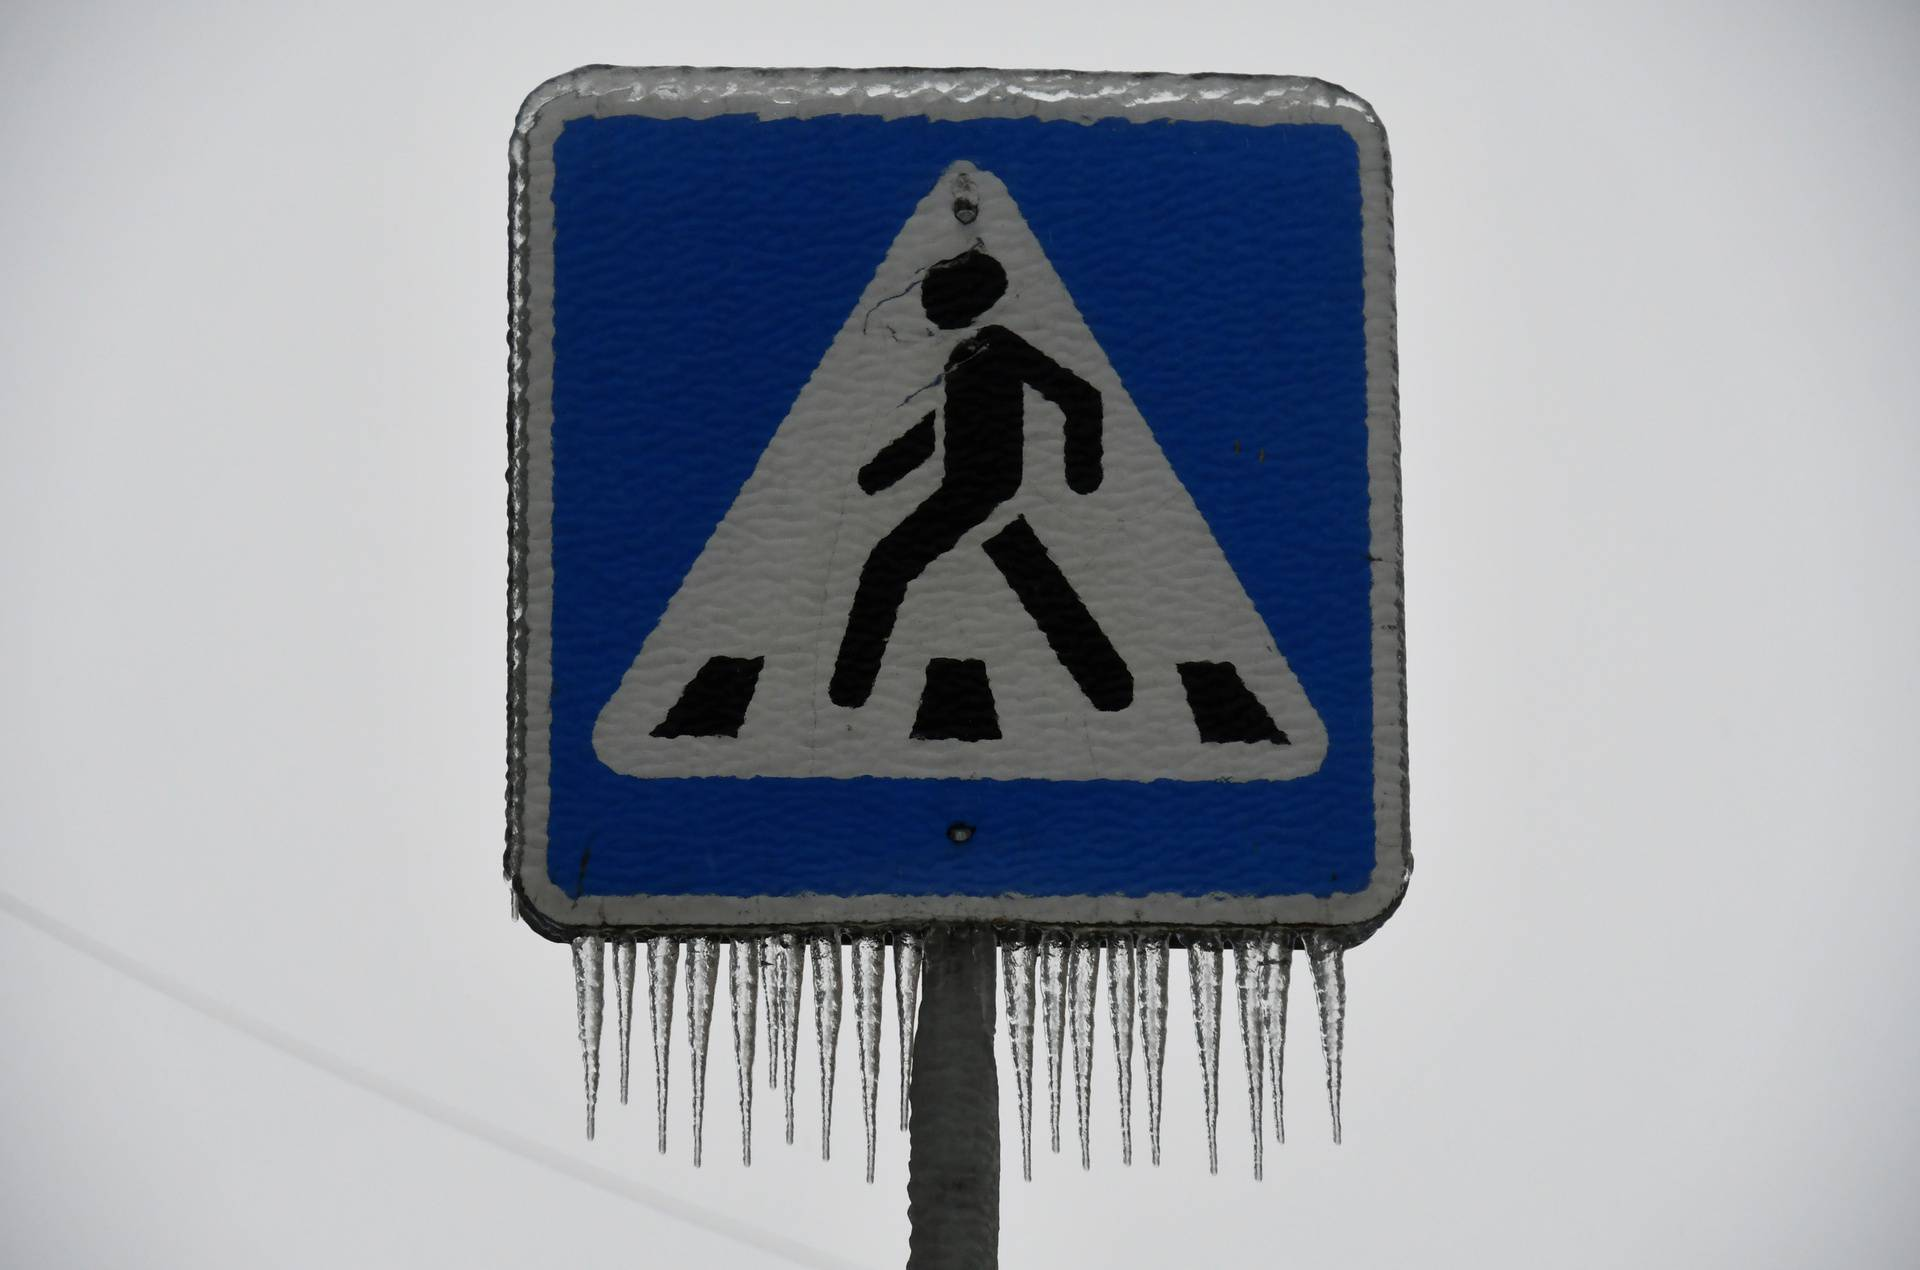 An ice covered road sign is pictured after freezing rain in the far eastern city of Vladivostok